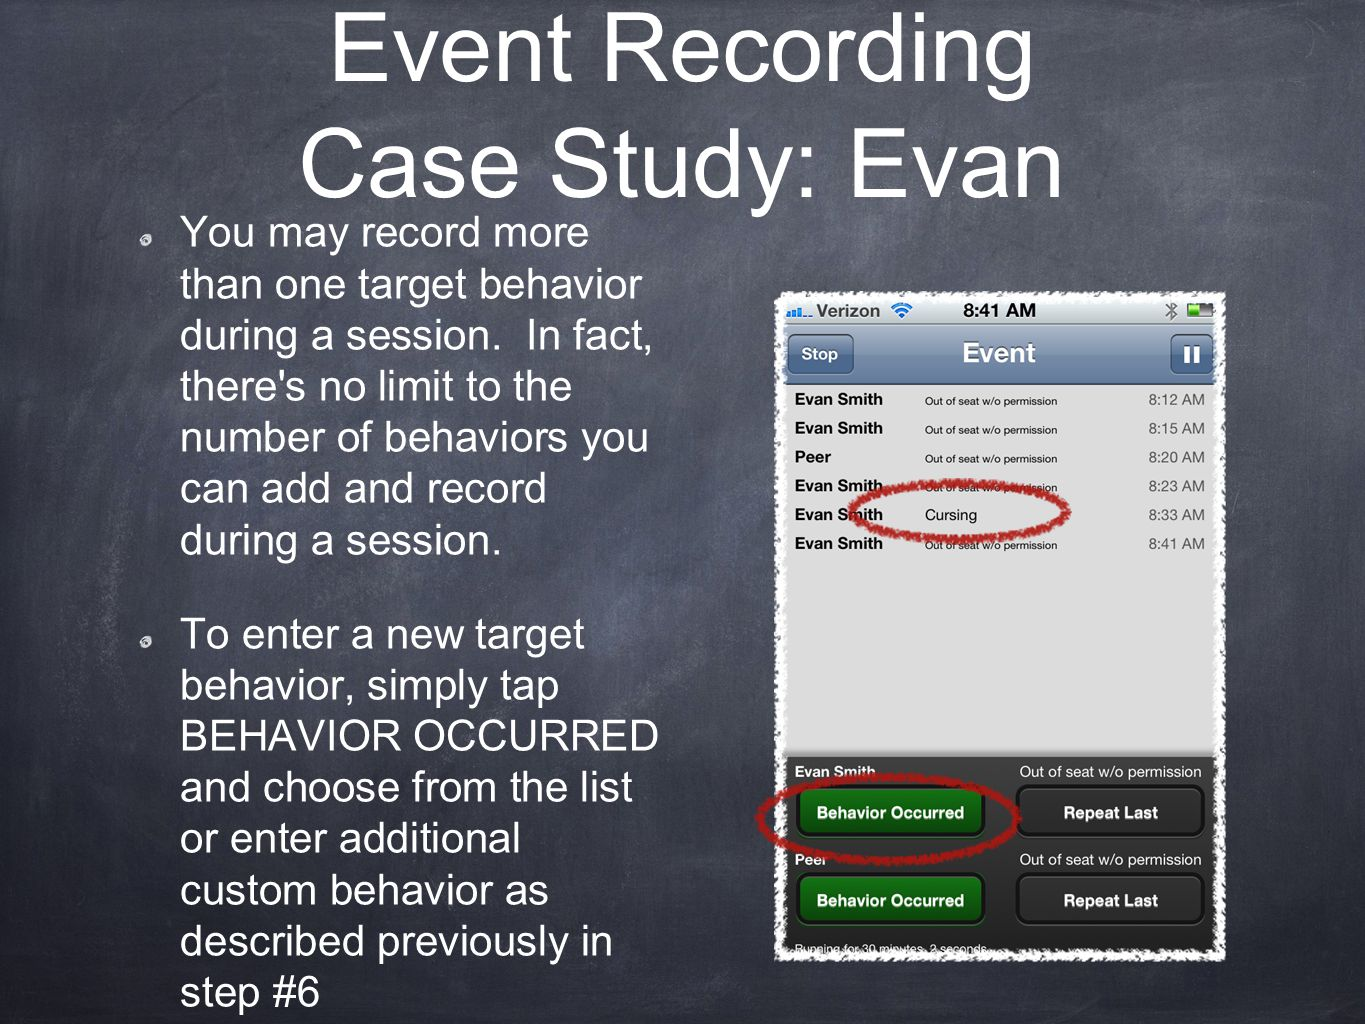 You may record more than one target behavior during a session.